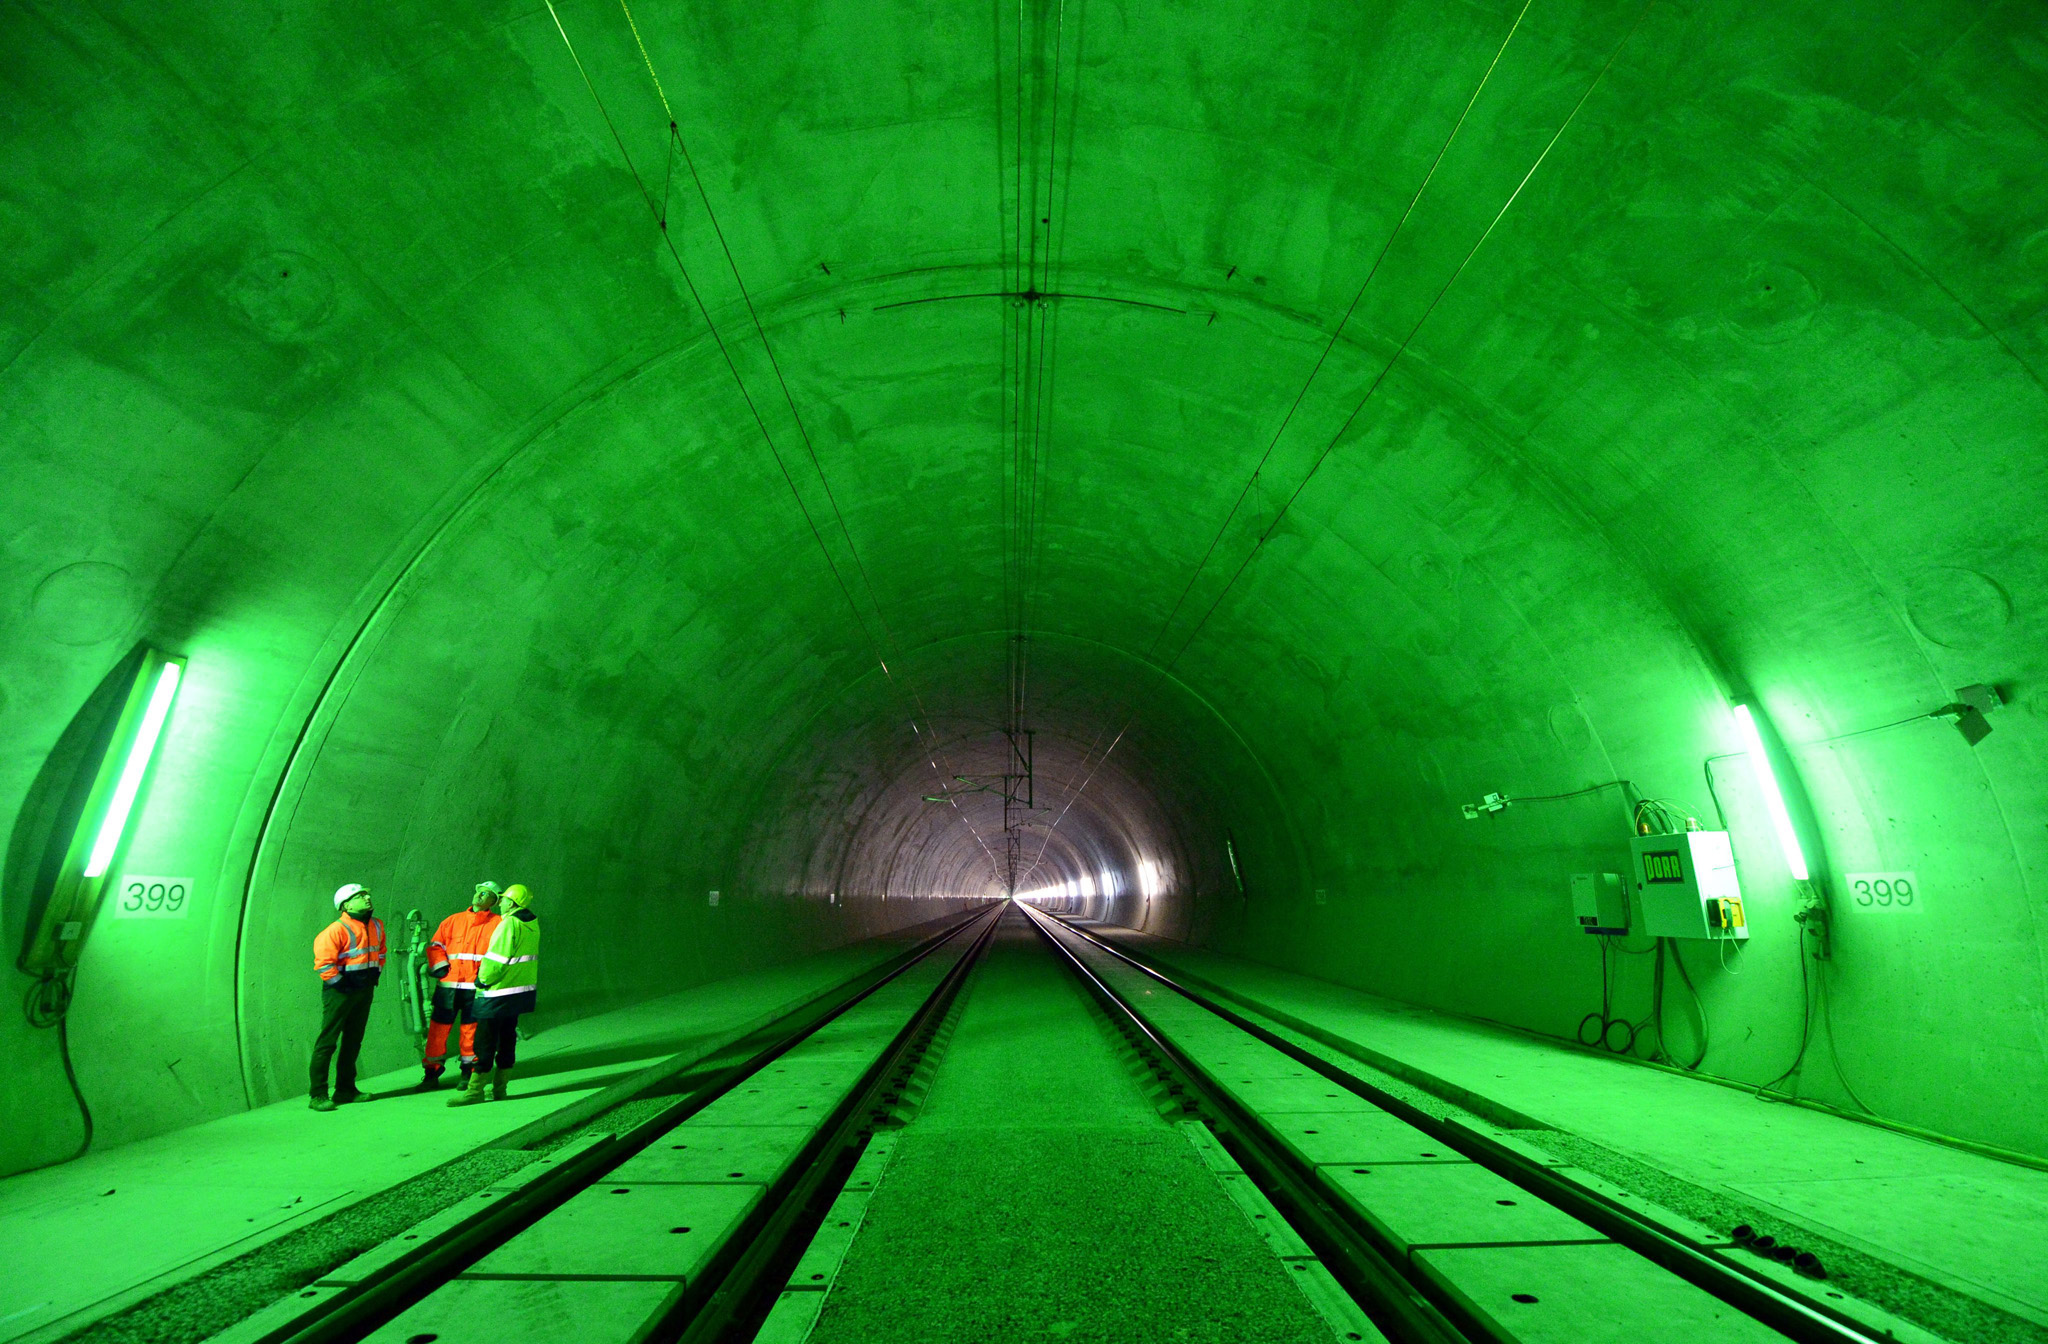 Silberberg Tunnel on the new ICE route...epa05058295 Construction workers stand next to the tracks for the future German high-speed ICE train route inside the 'Silberberg Tunnel' near Grossbreitenbach, Germany, 07 December 2015. The Silberberg Tunnel is 7,391 meters long and the second longest tunnel on the new route between Ebensfeld and Erfurt.  EPA/MARTIN†SCHUTT